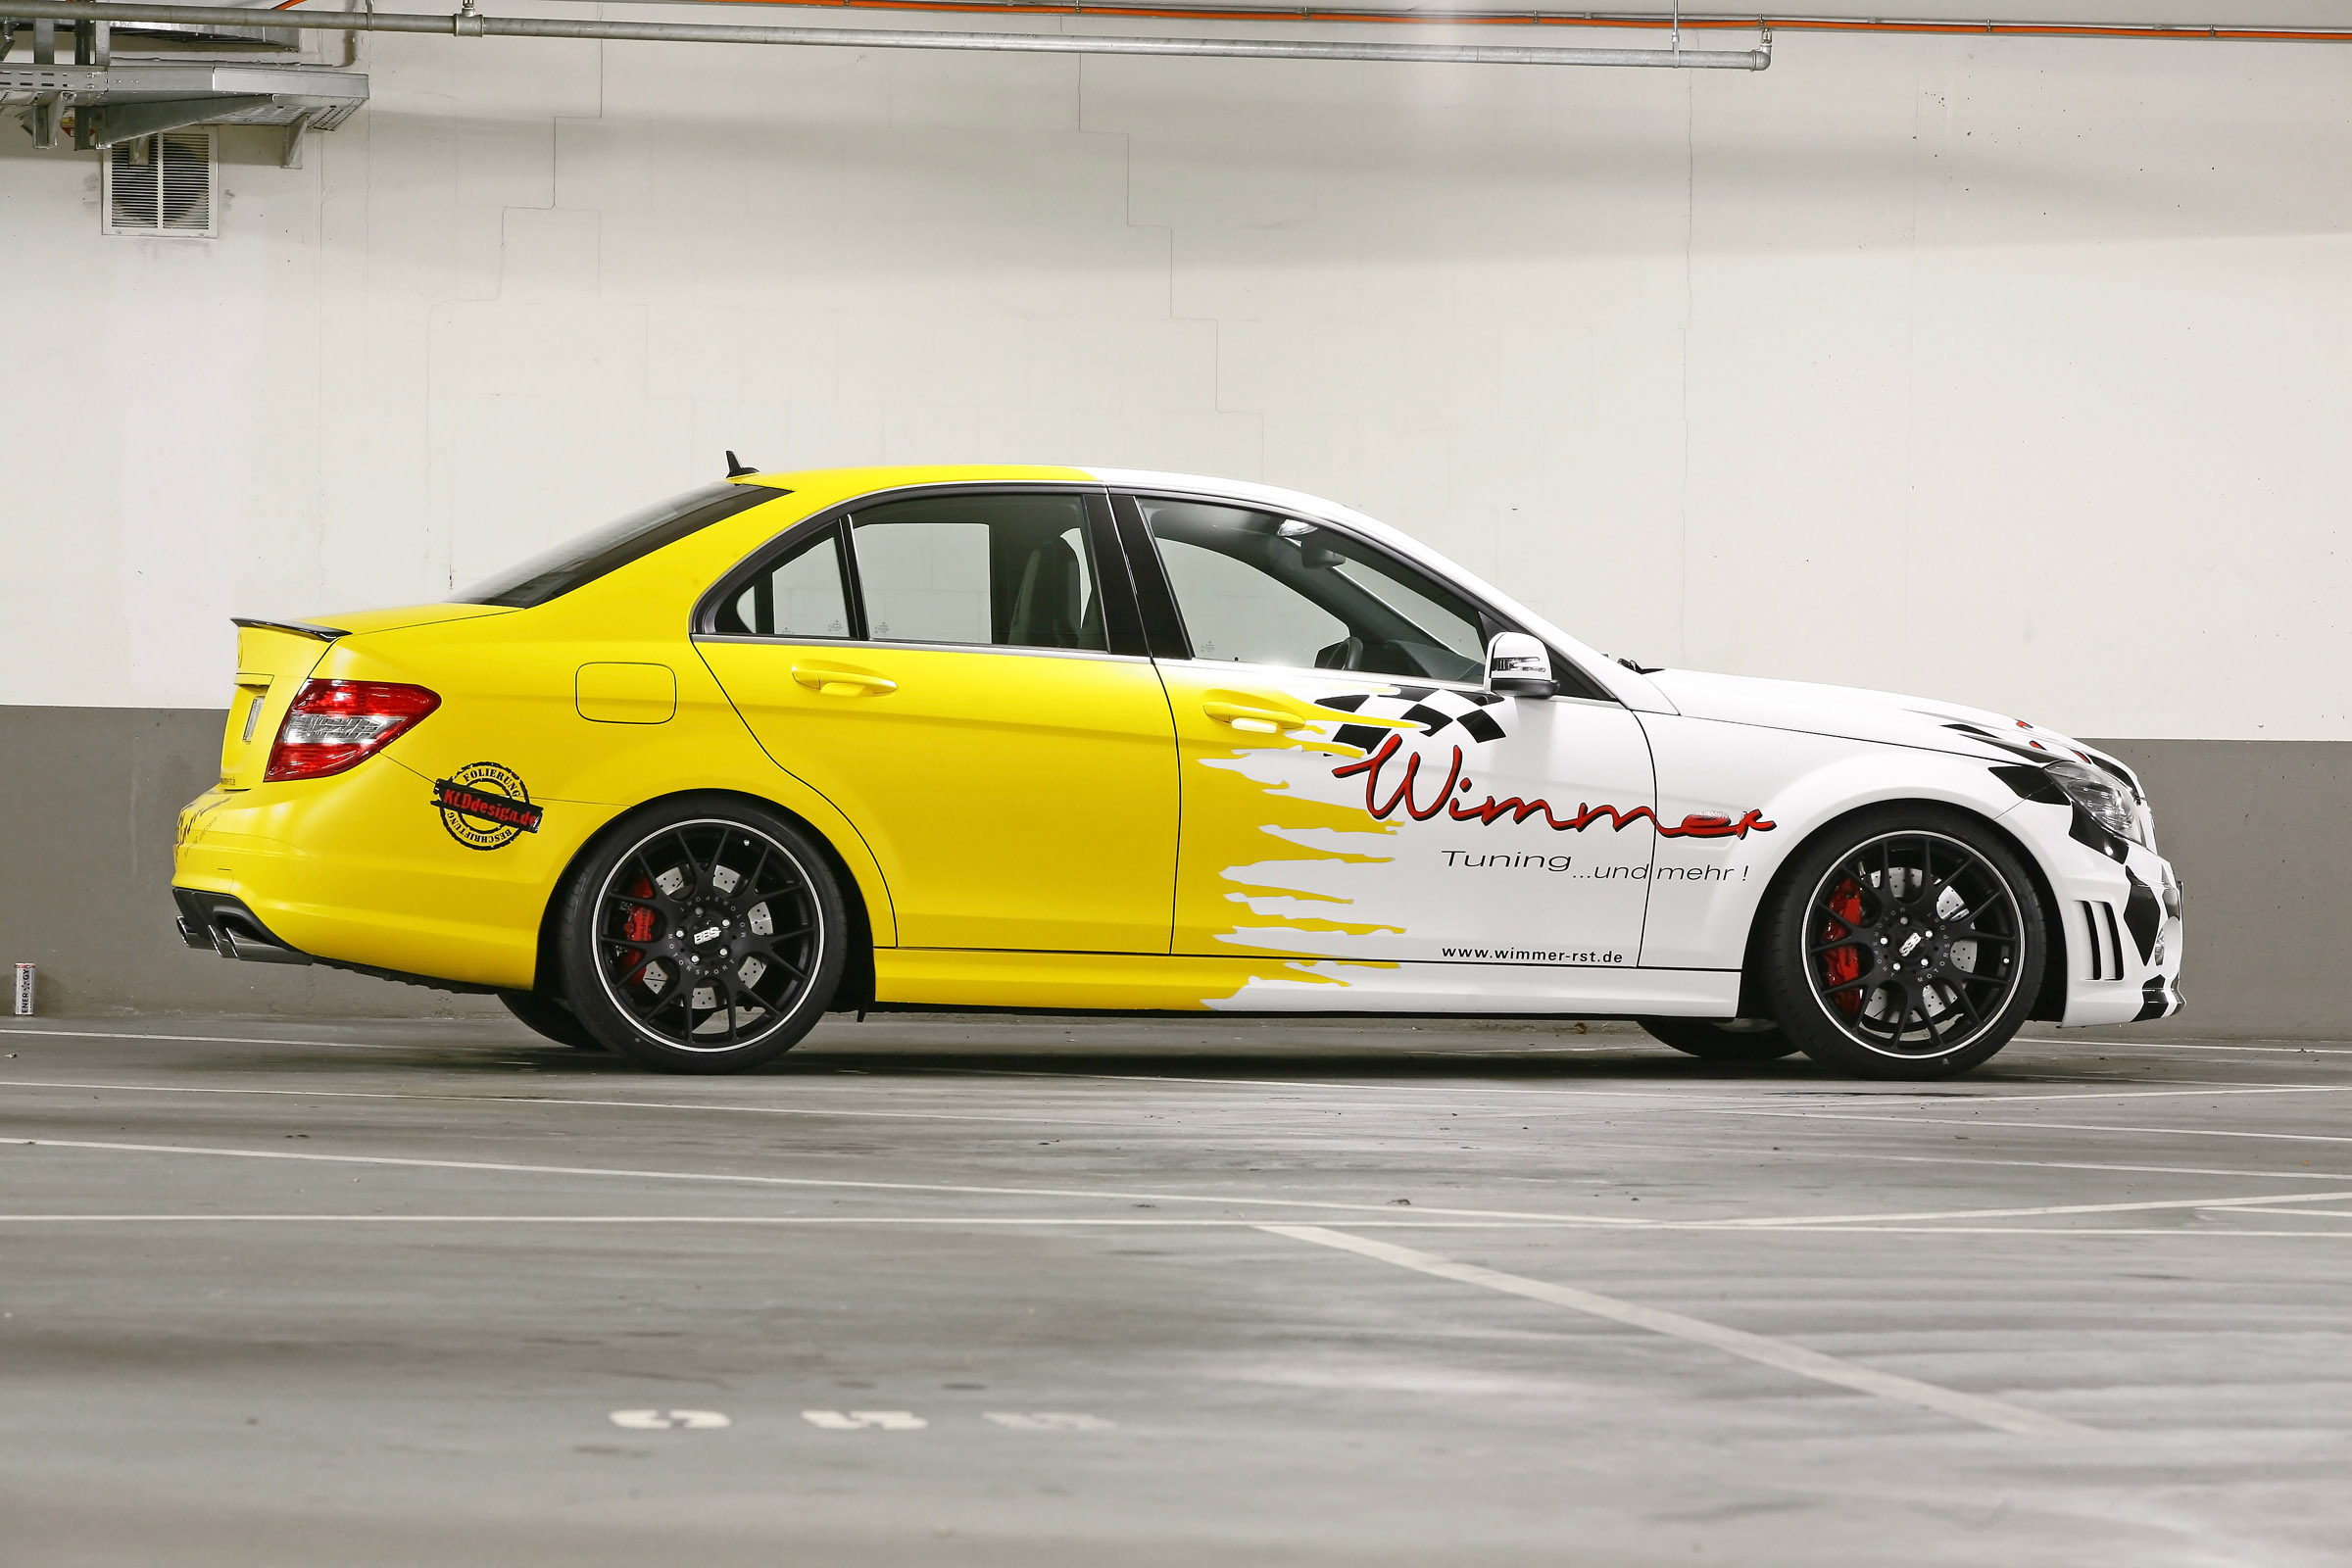 Wimmer rs mercedes benz c63 amg performance mercedes for Performance mercedes benz